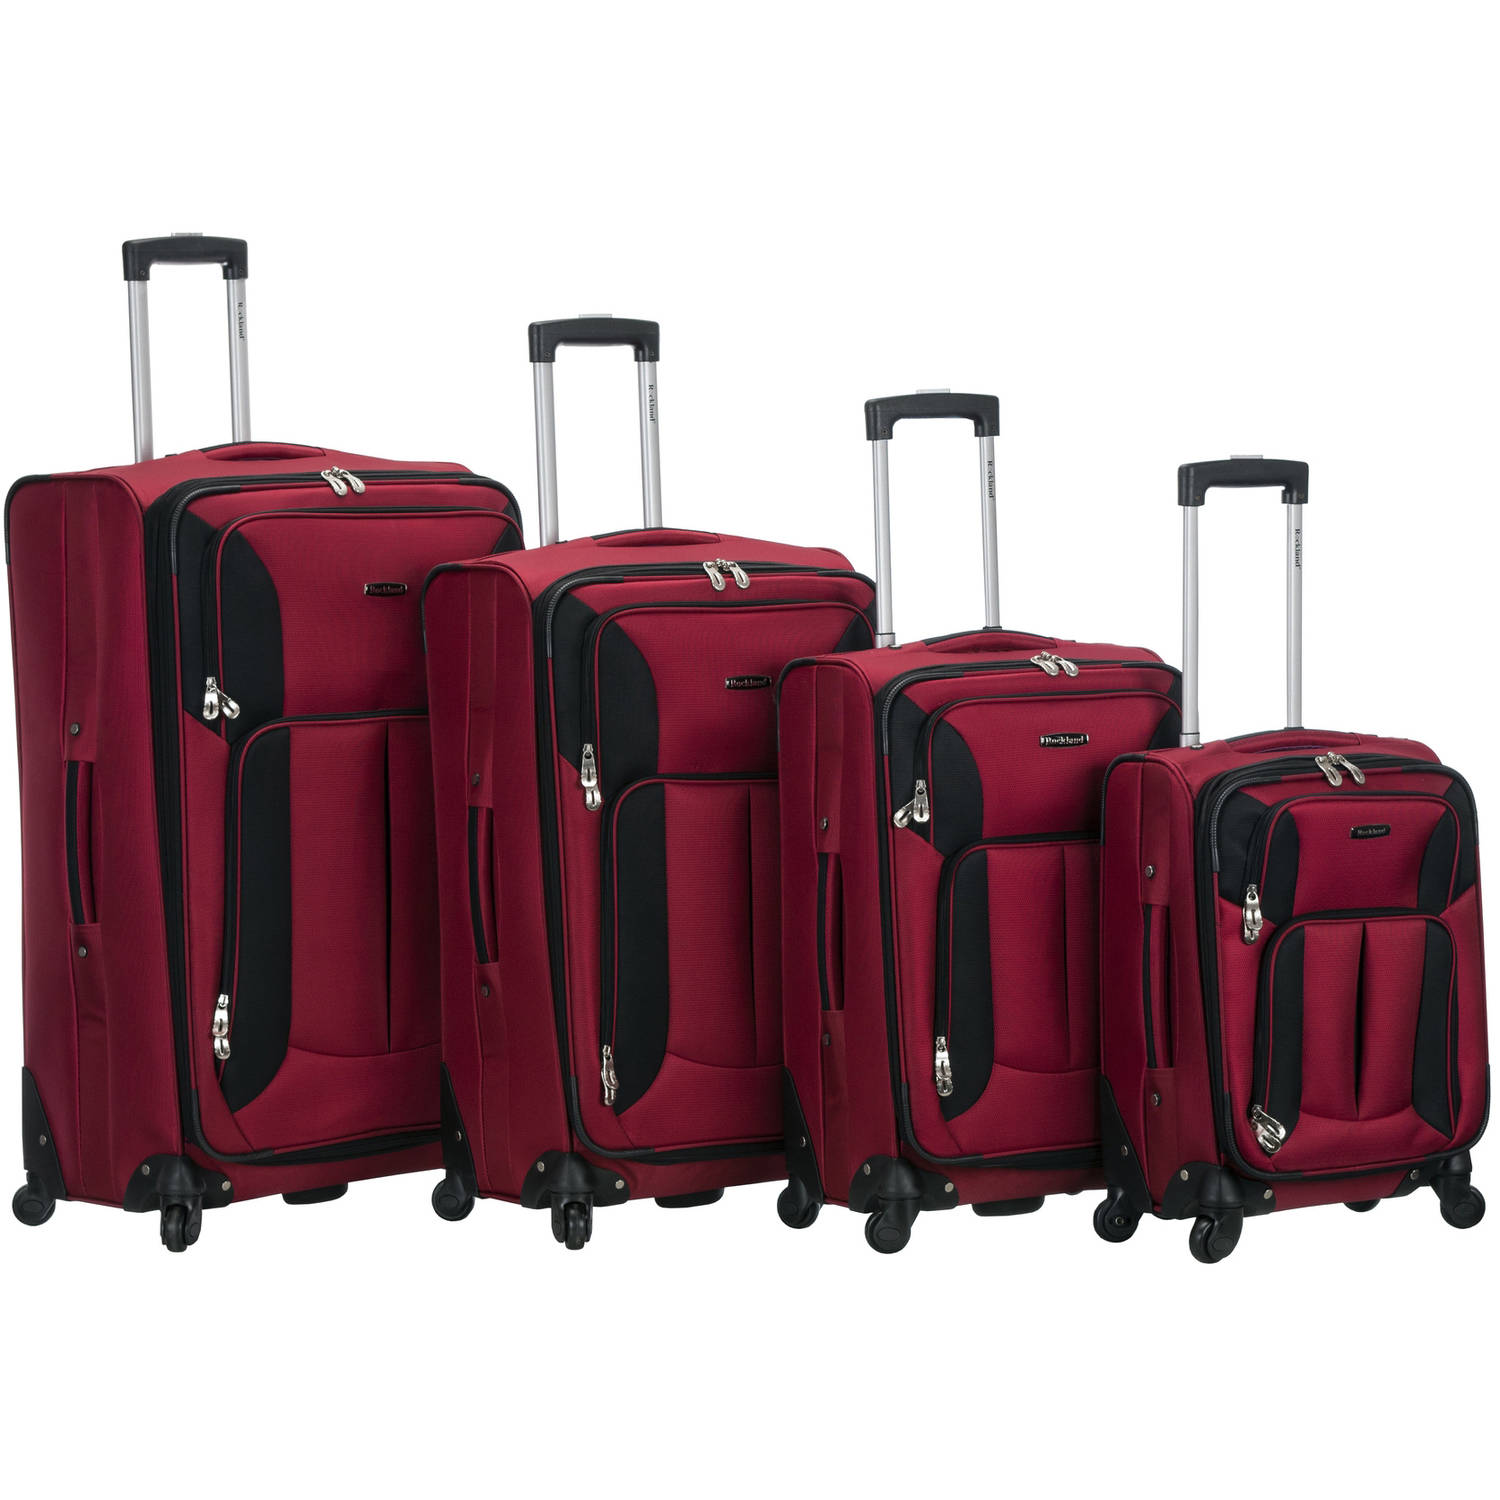 Rockland Impact Spinner Luggage Set, 4-Piece